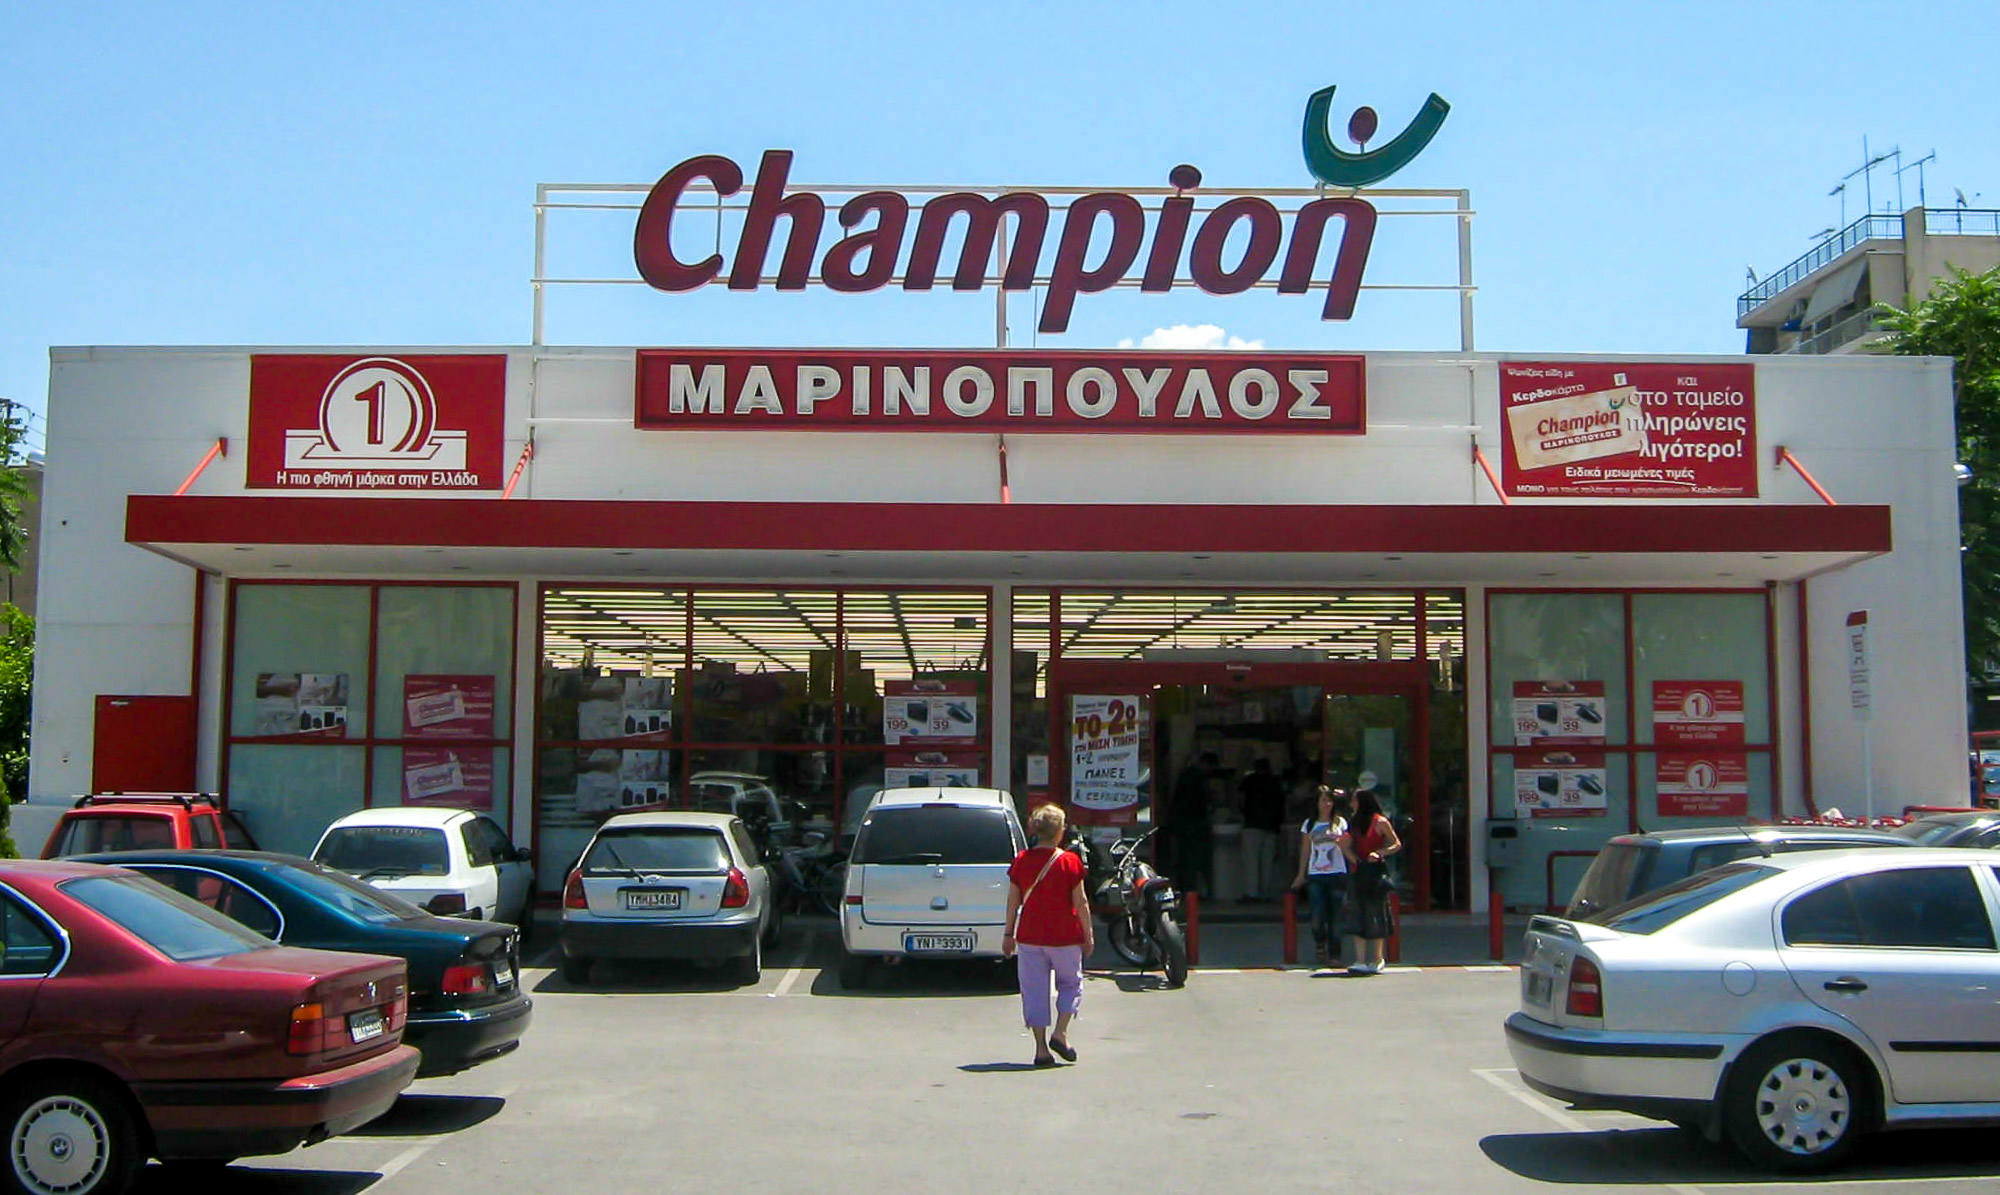 a43dba3069 We have maintained a long partnership with Carrefour-Marinopoulos and have  completed construction